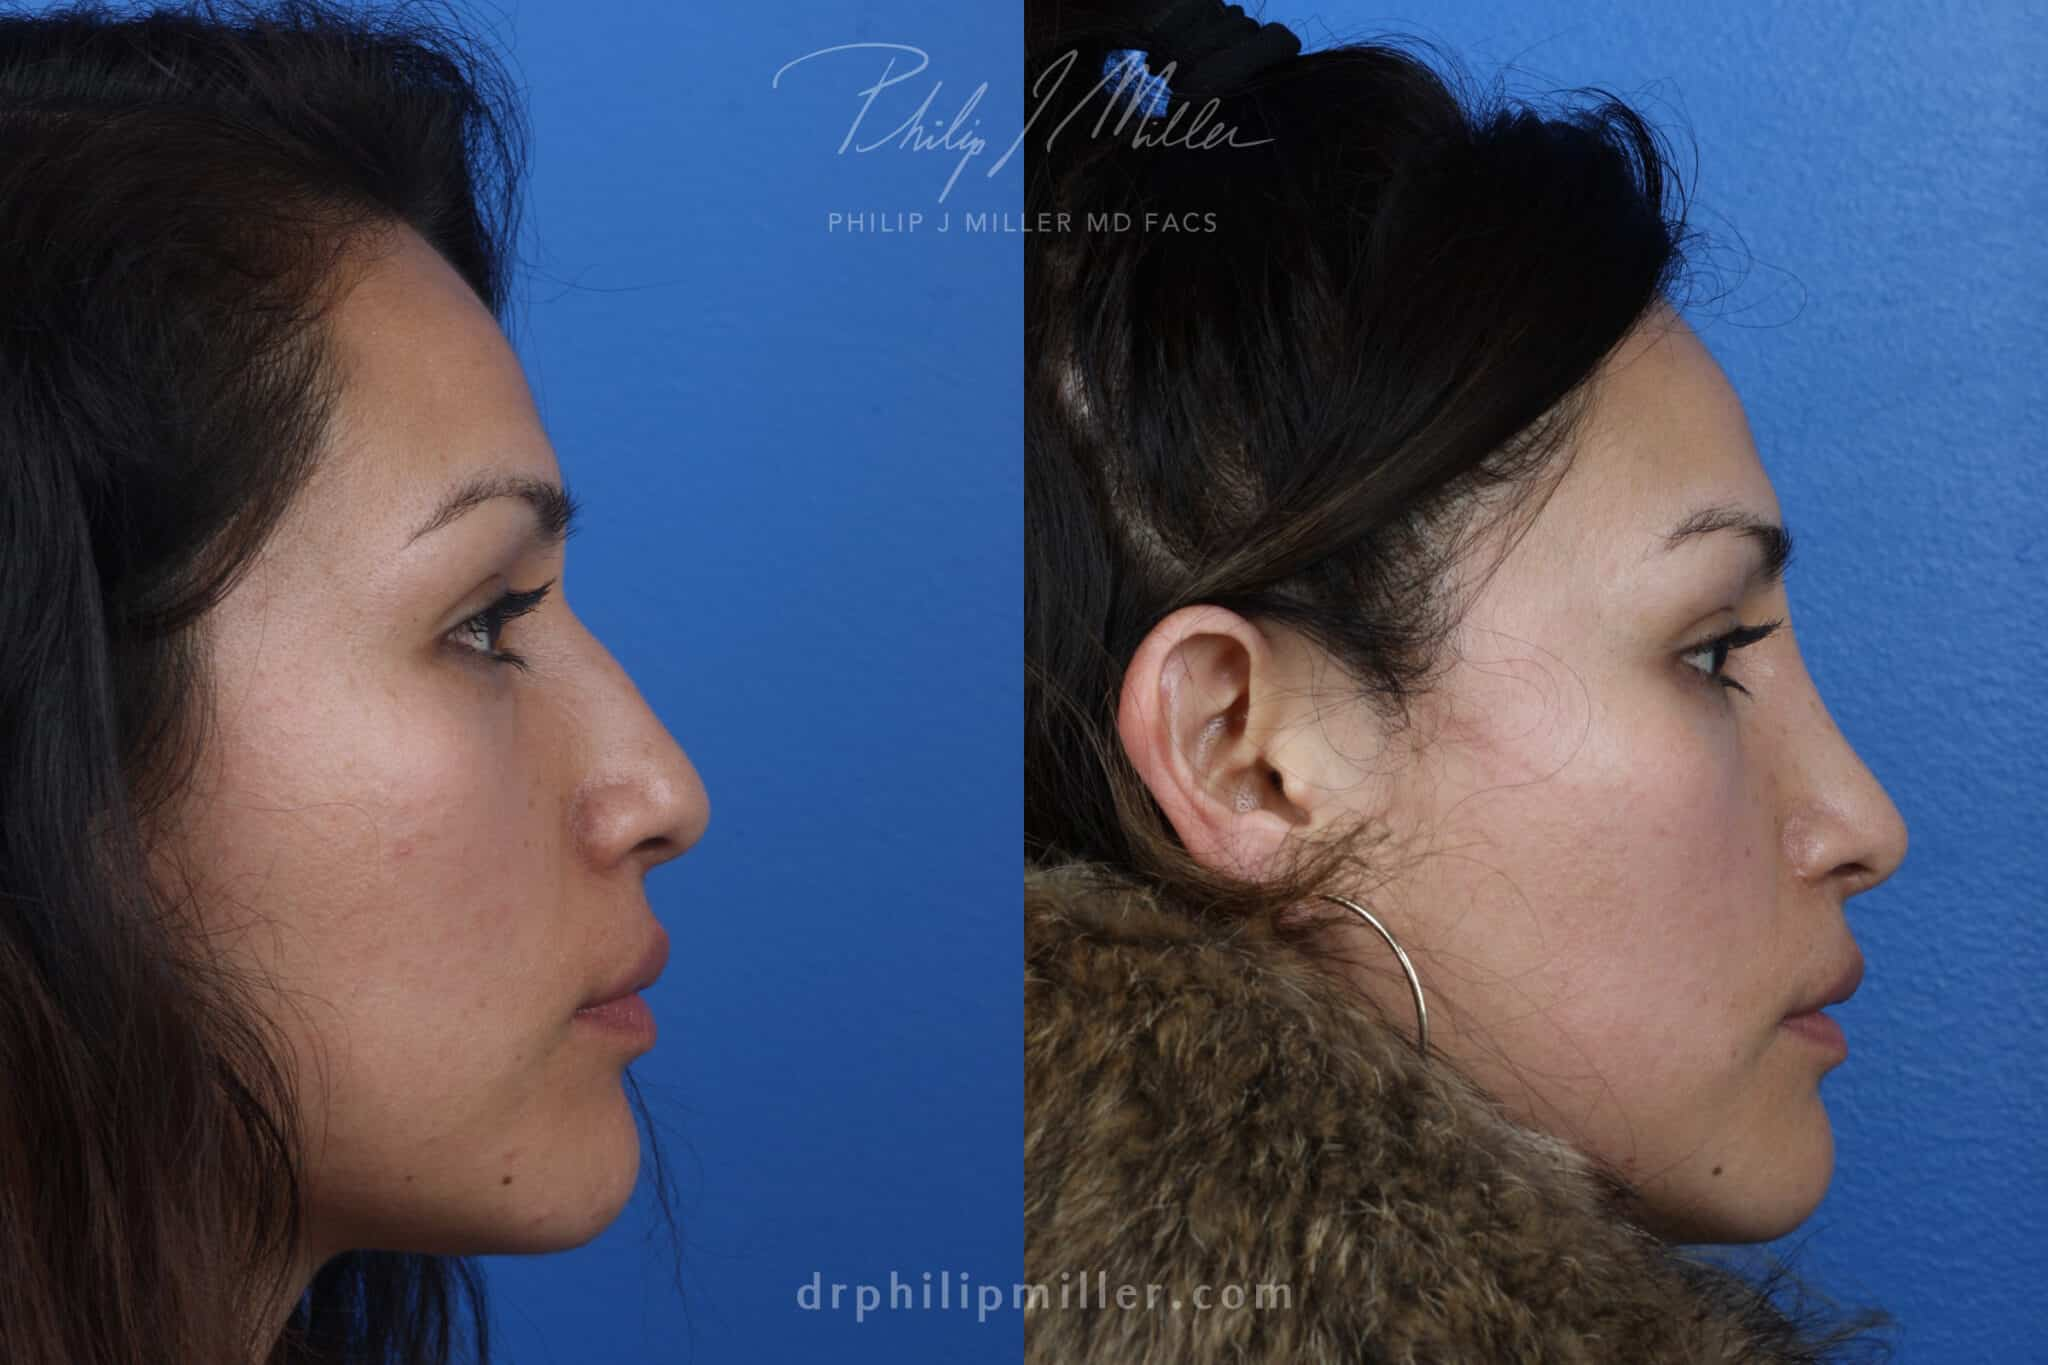 Rhinoplasty to remove hump from nasal bridge and refine tip by Dr. Miller